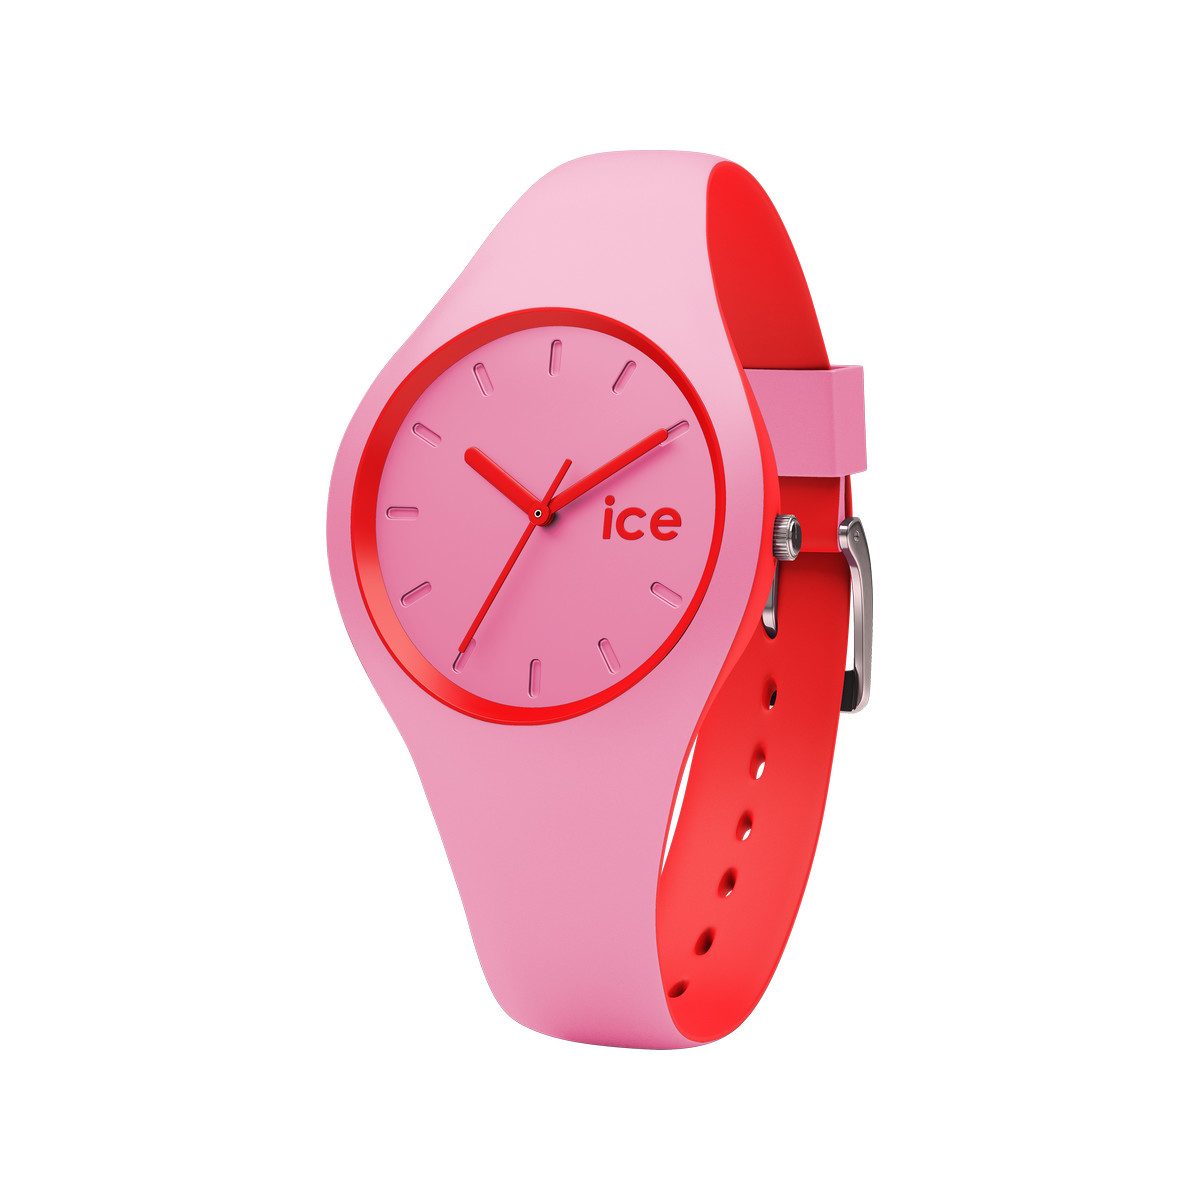 Montre Ice Watch femme silicone rose et rouge - vue 1